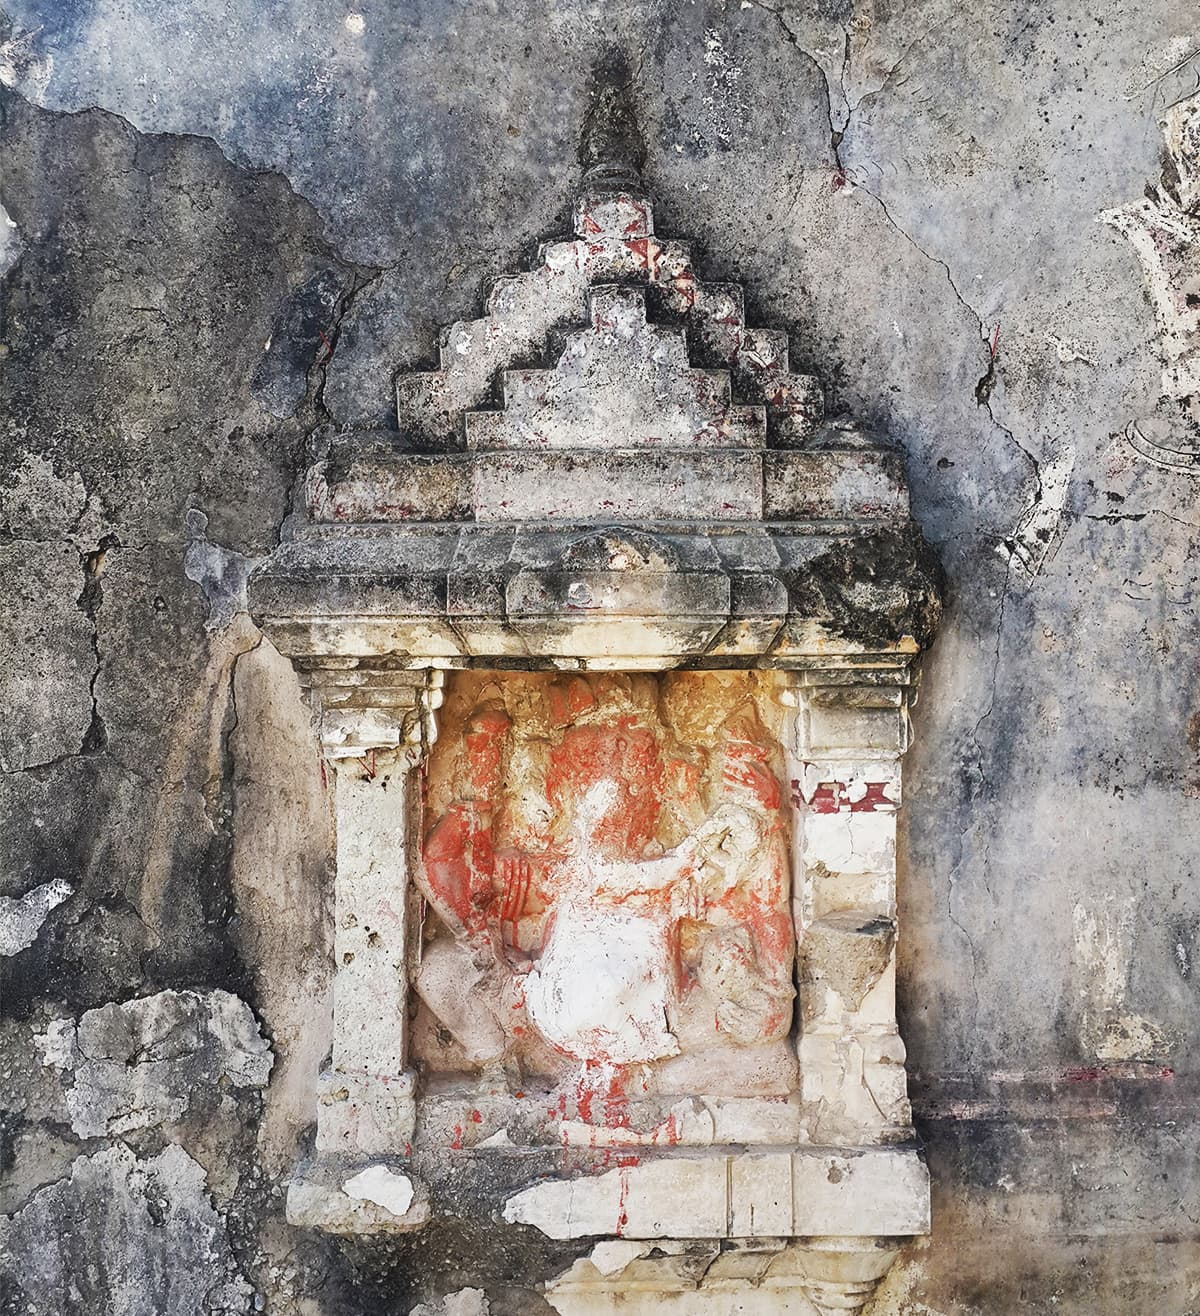 Carving on an outer wall of the temple. — Photo by author